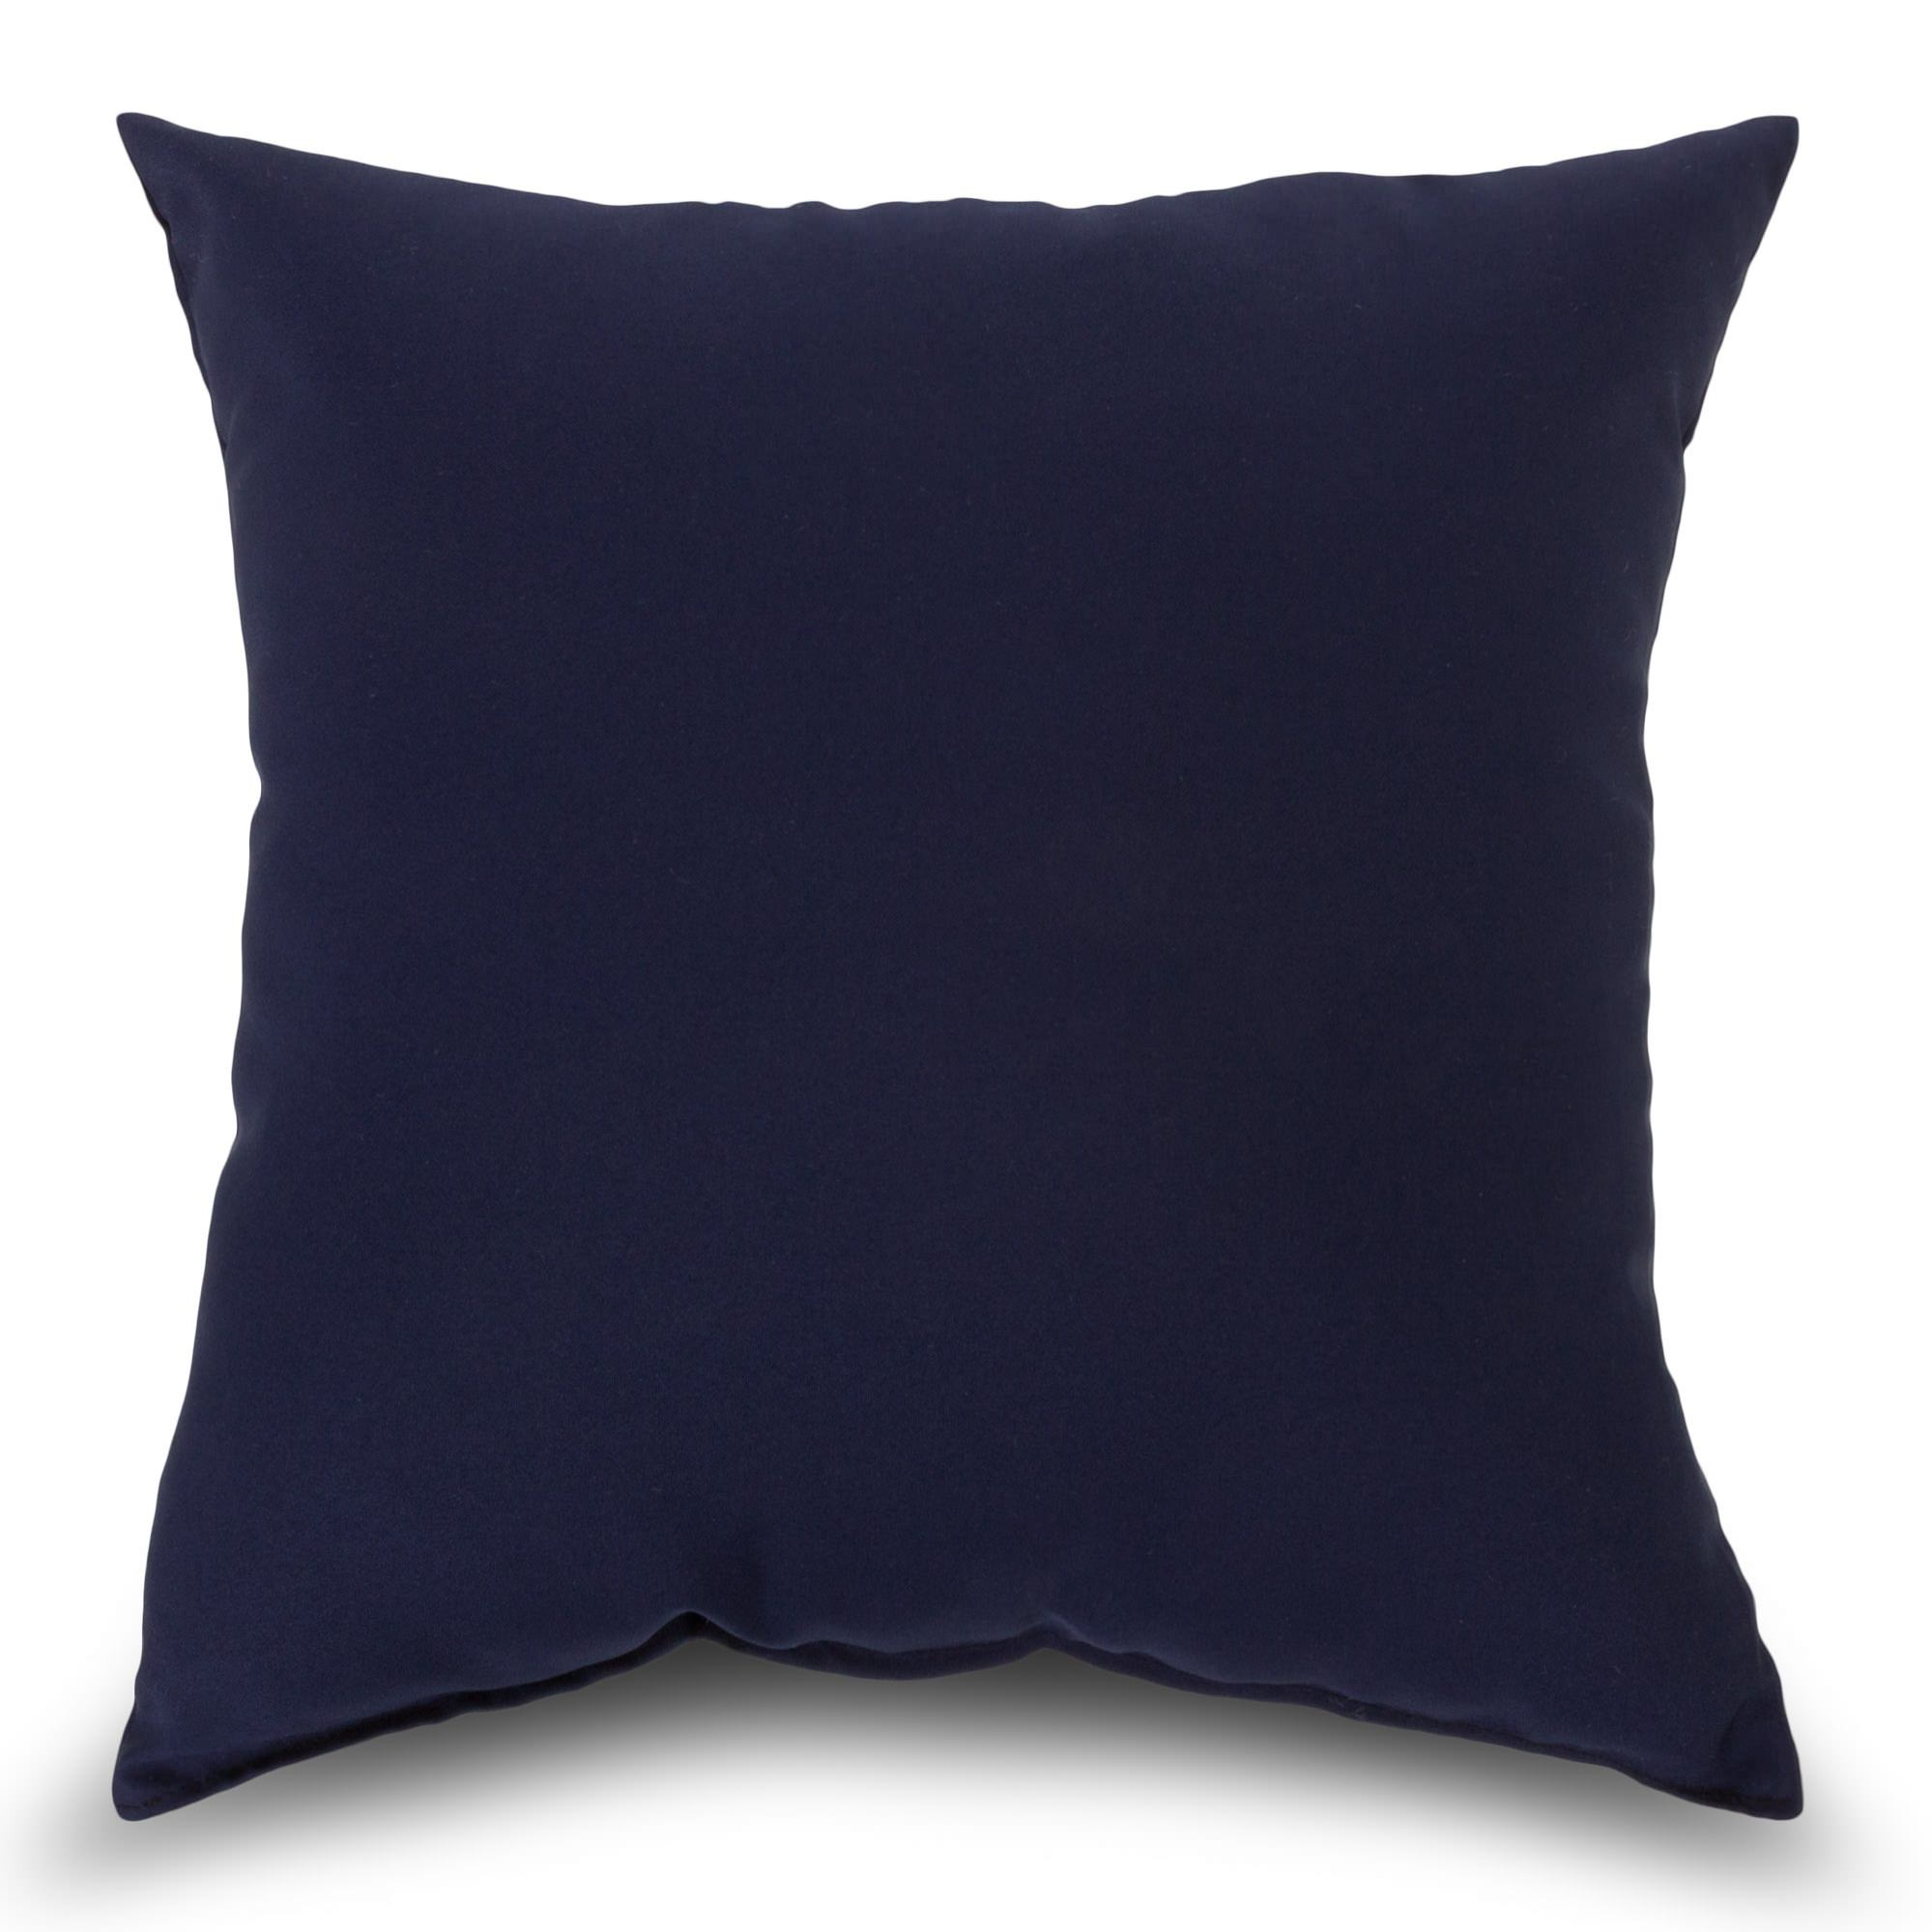 Navy Outdoor Throw Pillow